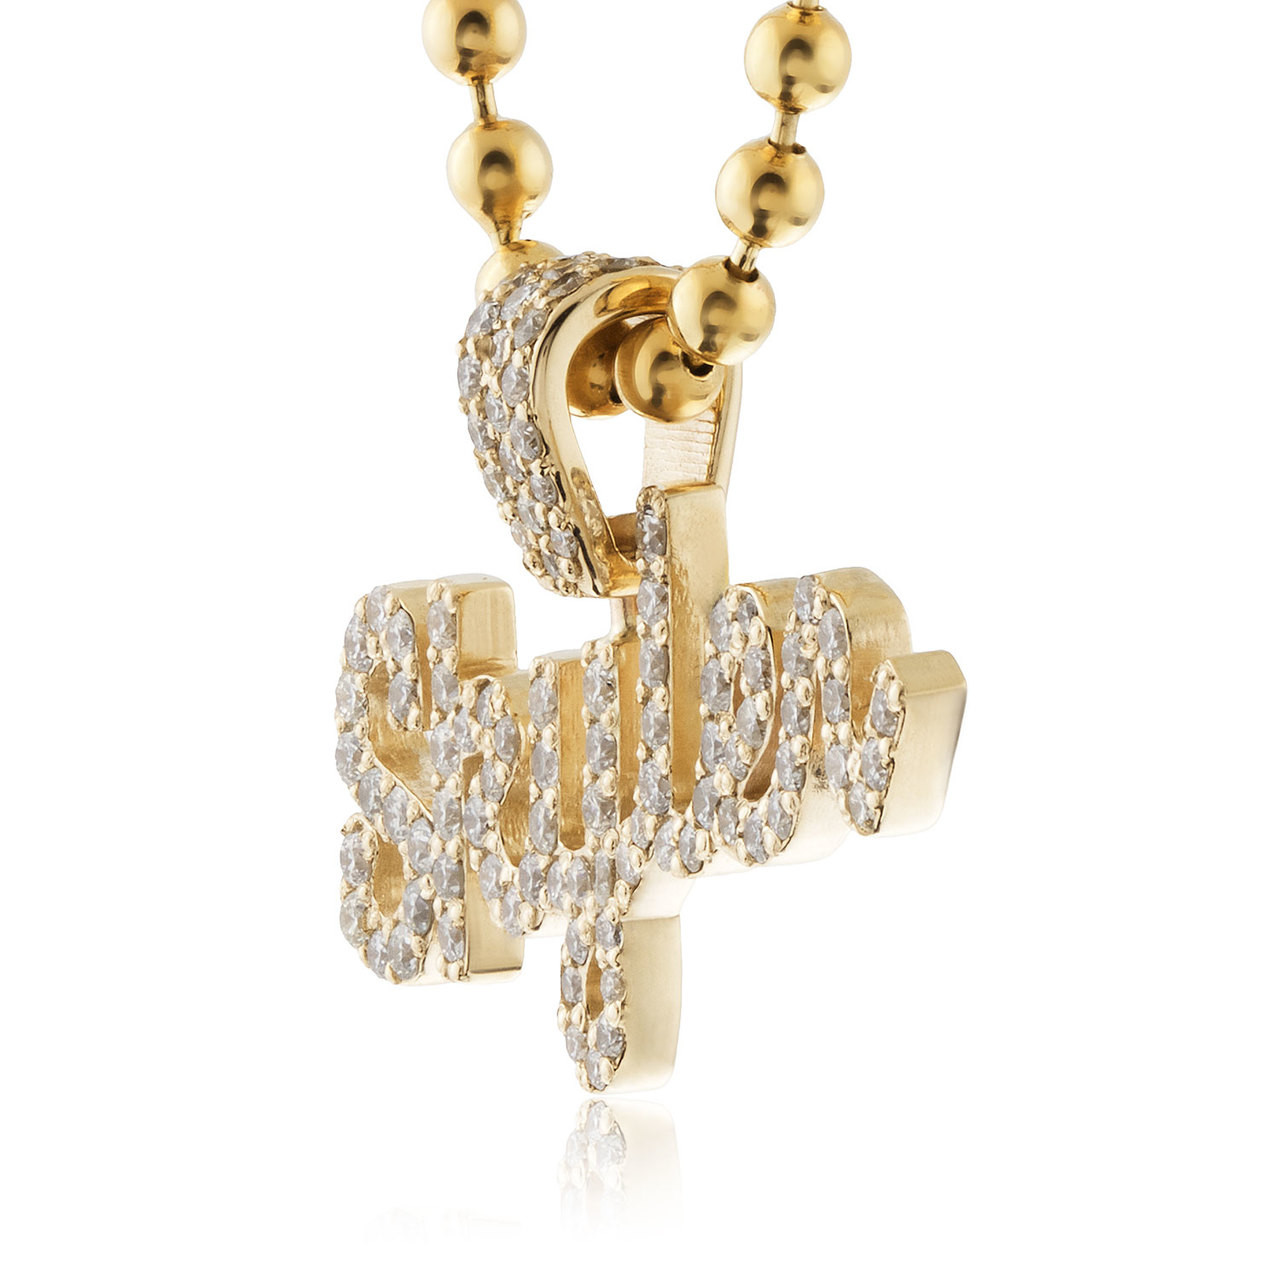 255ab0ffaf42b7 Home · Women's Jewelry · 14k Yellow Gold Custom Diamond 'Skyler' Name  Pendant. Previous